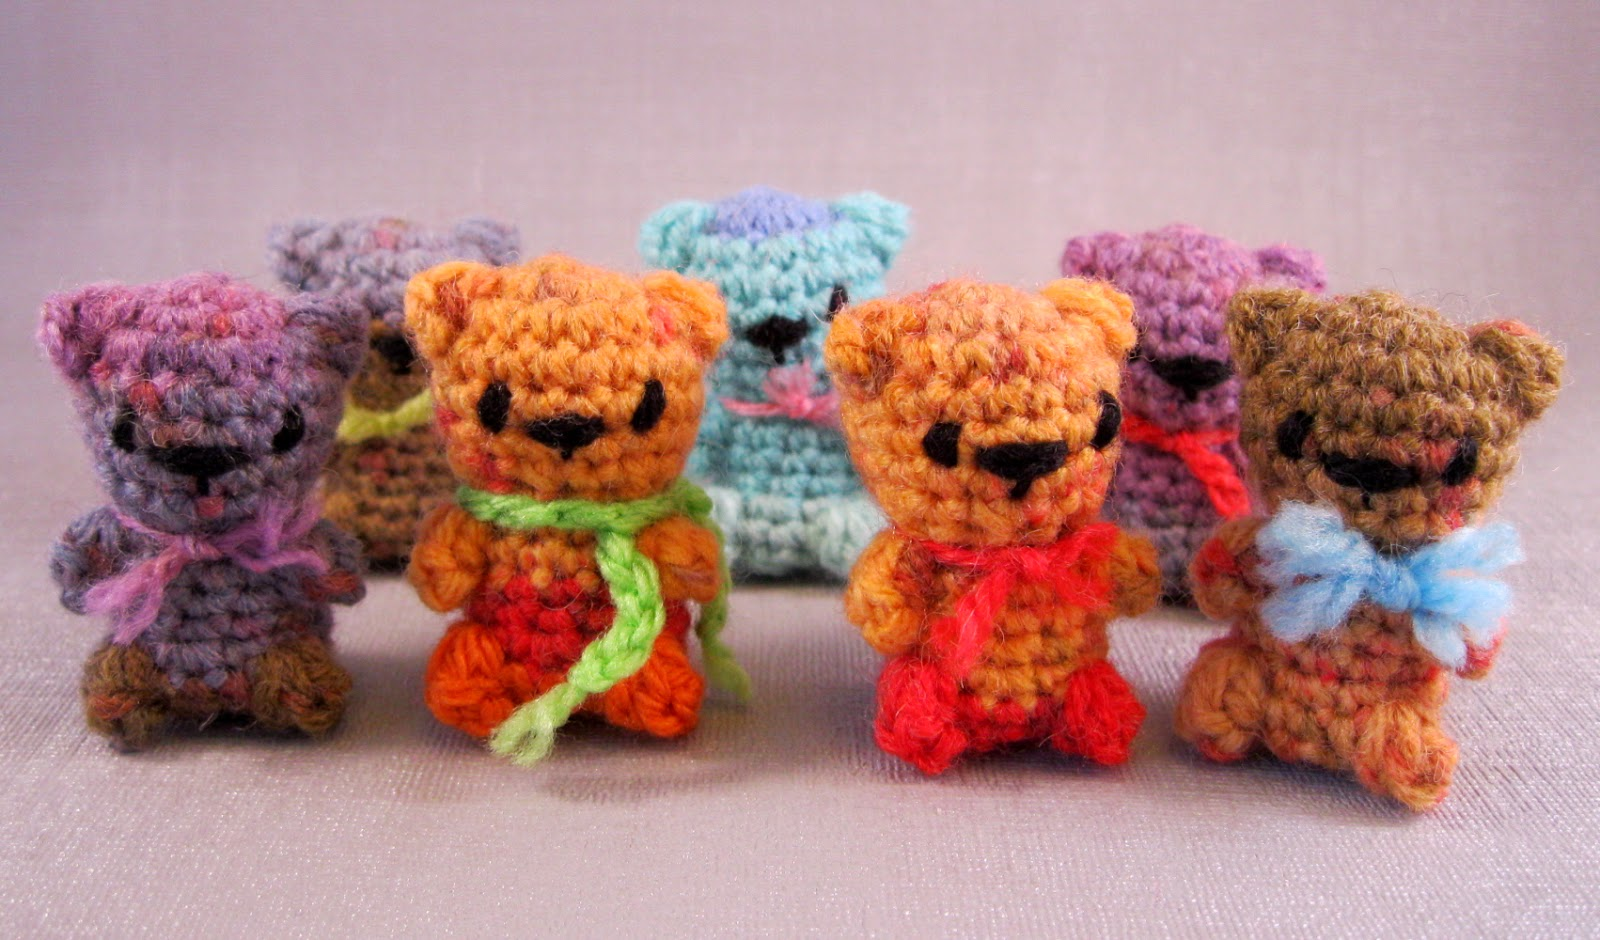 Micro Amigurumi Animal Patterns : LucyRavenscar - Crochet Creatures: Yarn party, and ideas ...